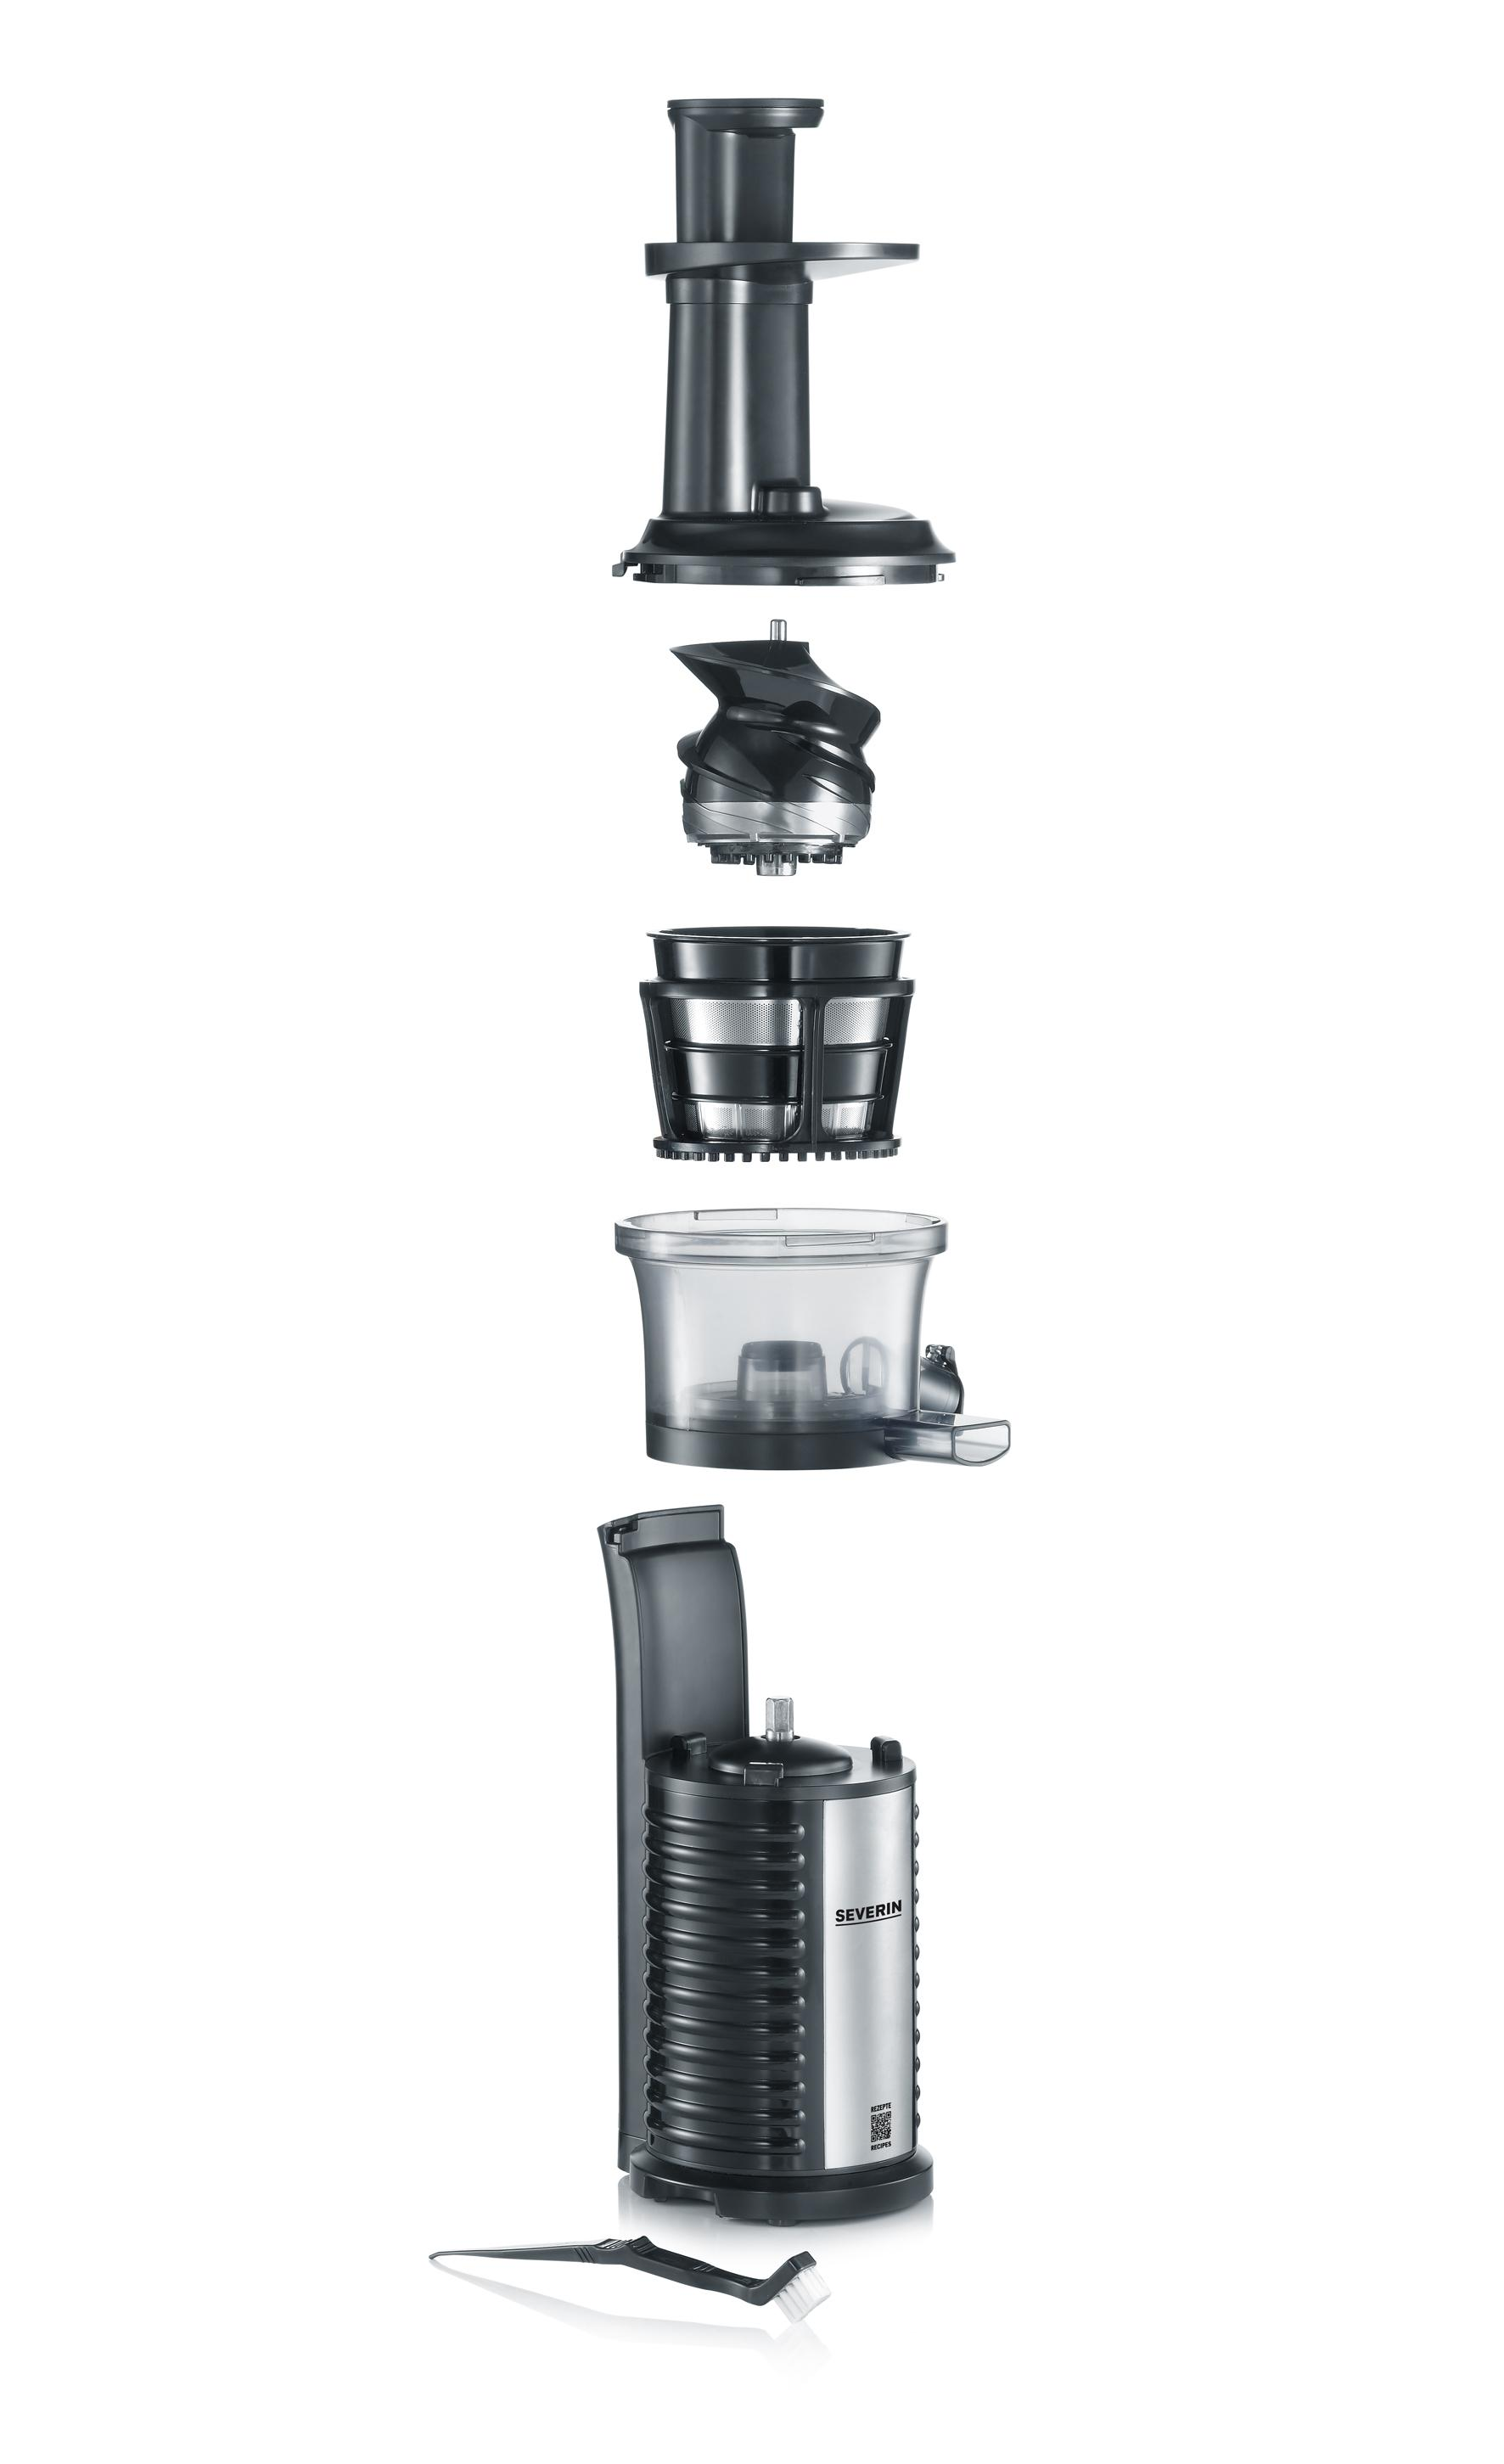 Severin ES 3569 Slow Juicer Estrattore di Succo senza Lame, BPA free: Amazon.it: Casa e cucina